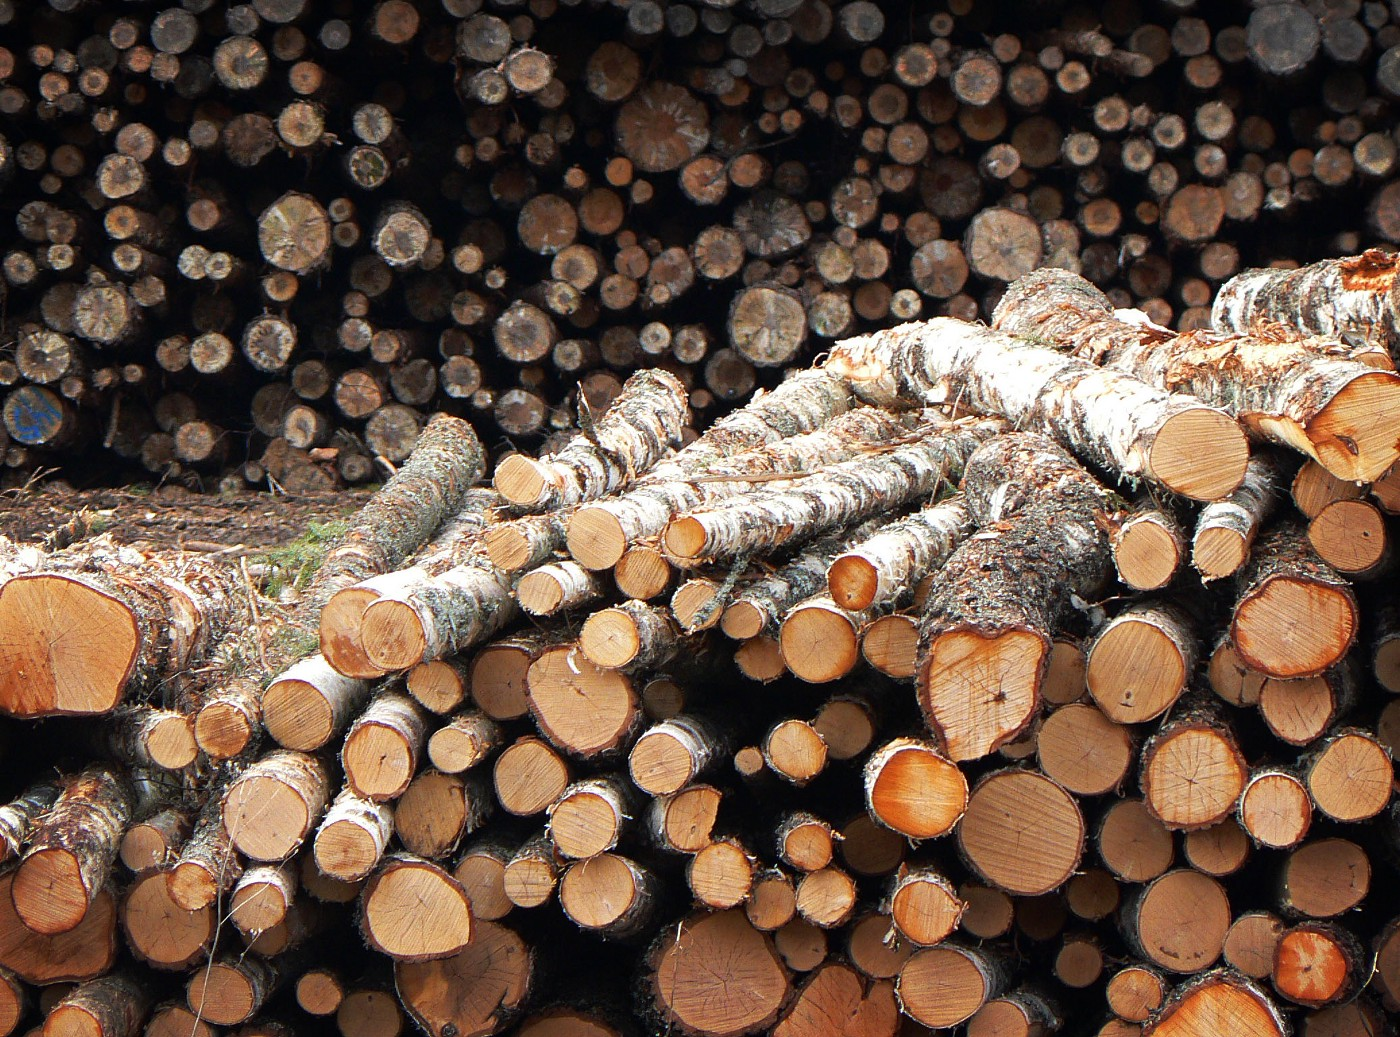 Logs that are about to rotate